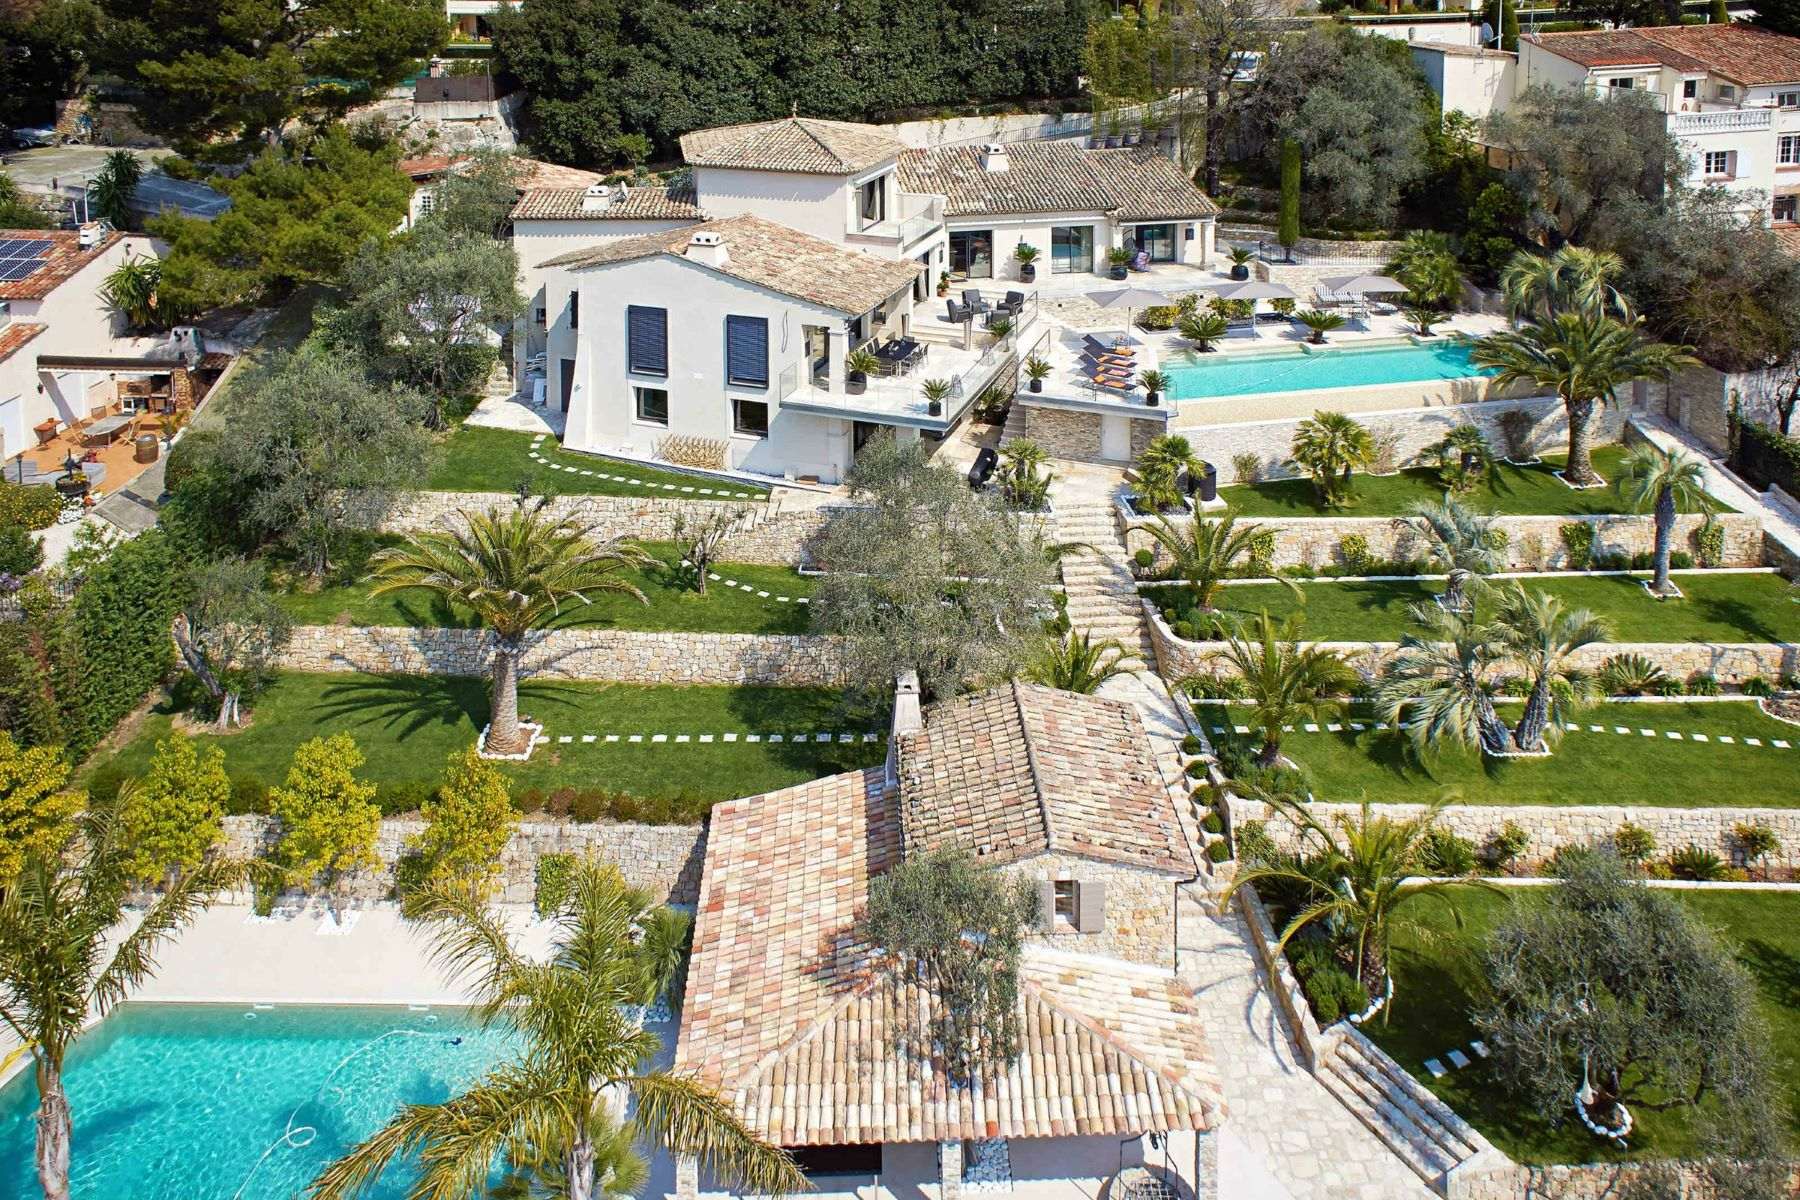 Single Family Home for Sale at Luxury renovated estate in the heights of Cannes Le Cannet, Provence-Alpes-Cote D'Azur, 06110 France